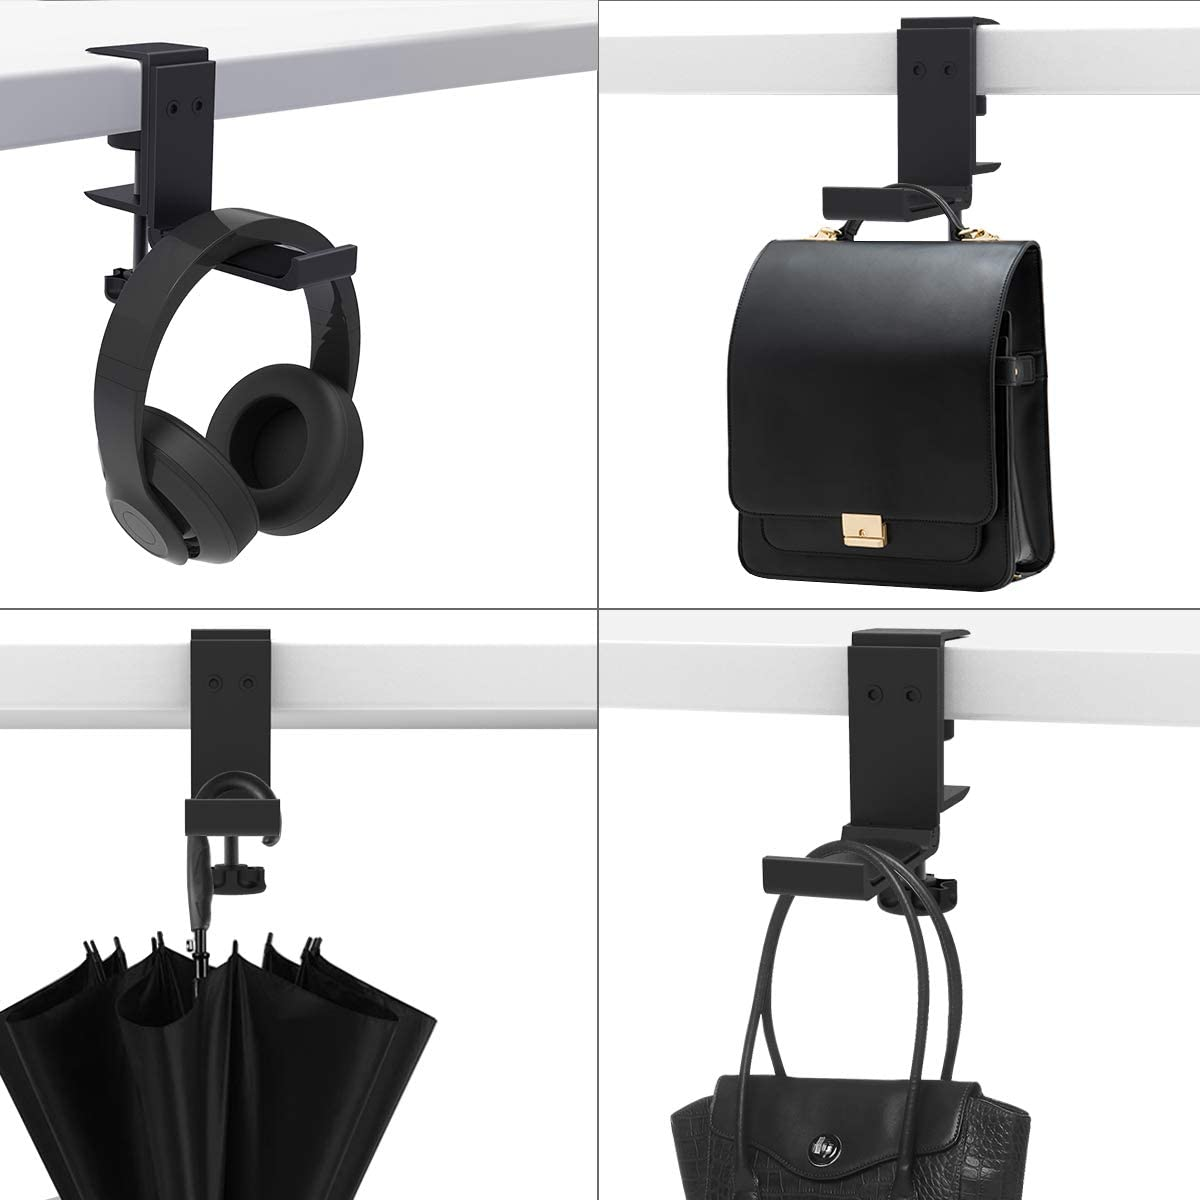 APPHOME Upgrade Foldable Headphone Stand Under Desk PC Gaming Headset Hanger Holder Hook Clamp with Built in Cable Clip Organizer Space Save Mount Fold Upward Not in Use Black Universal Fit